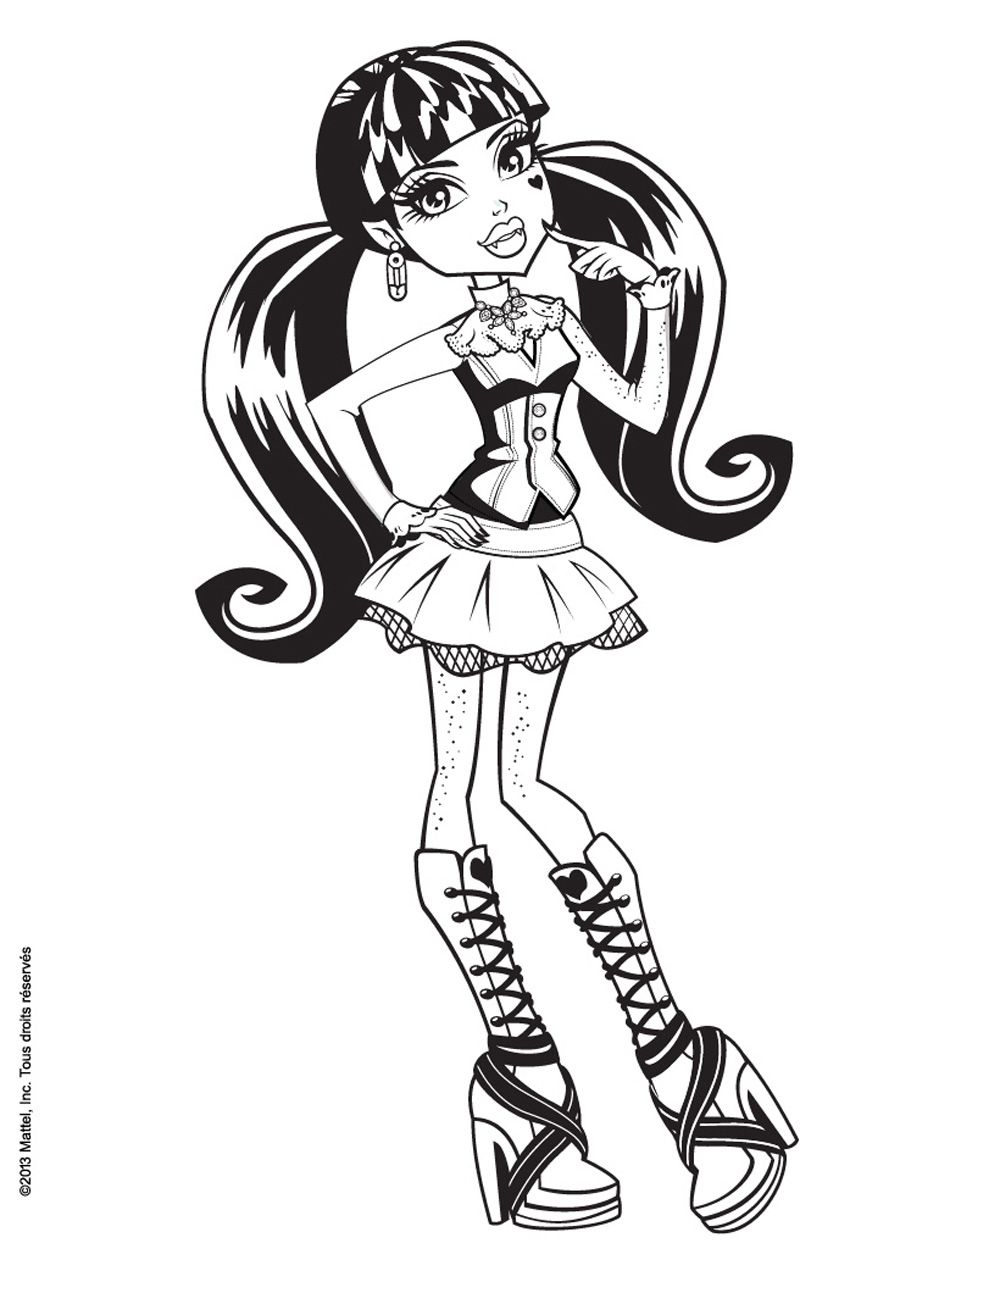 Monster High coloring page with few details for kids